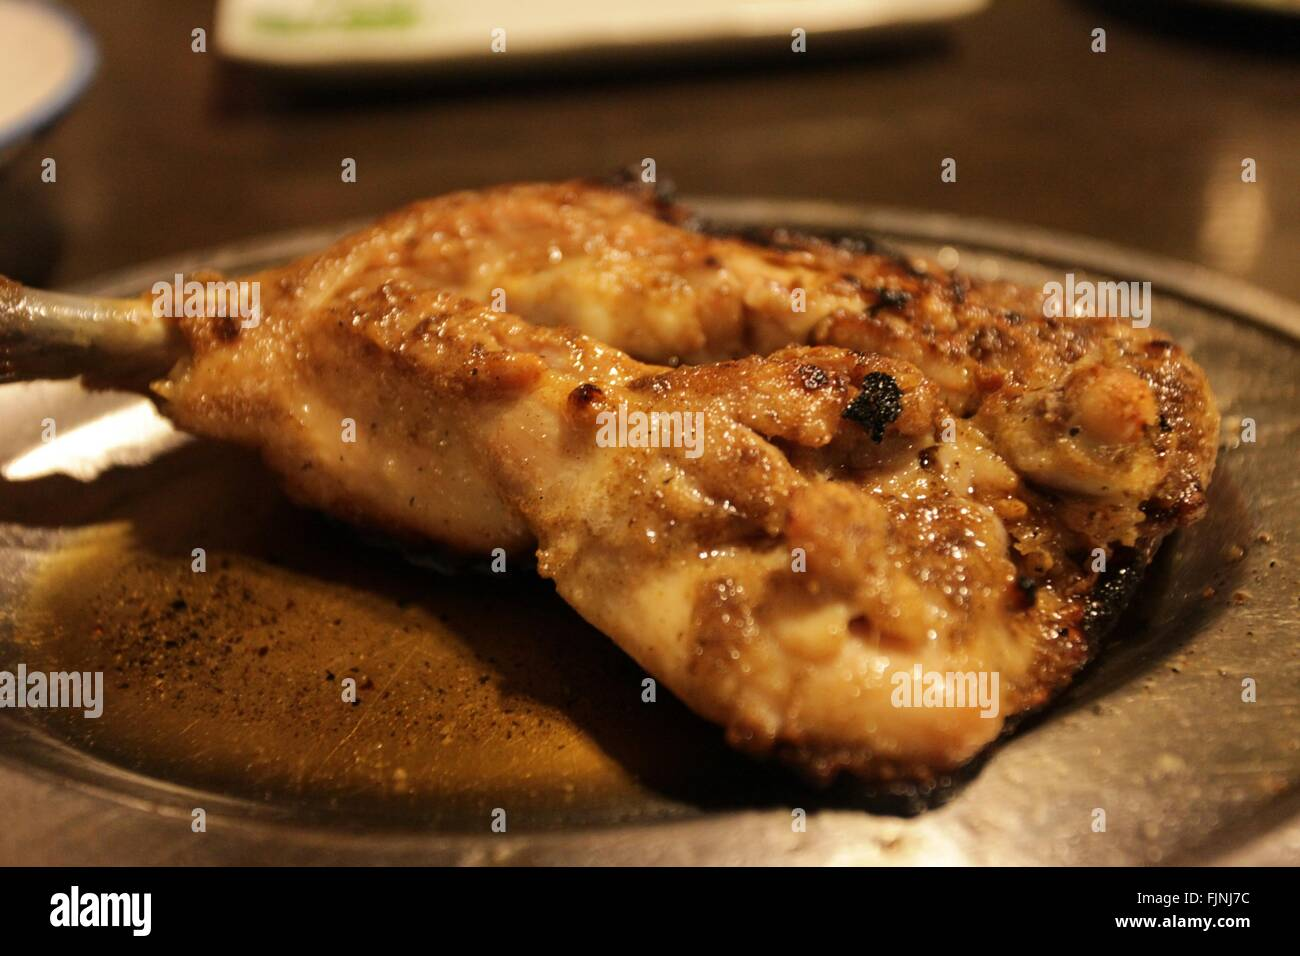 Close-Up Of Served Fried Chicken Meats In Plate - Stock Image